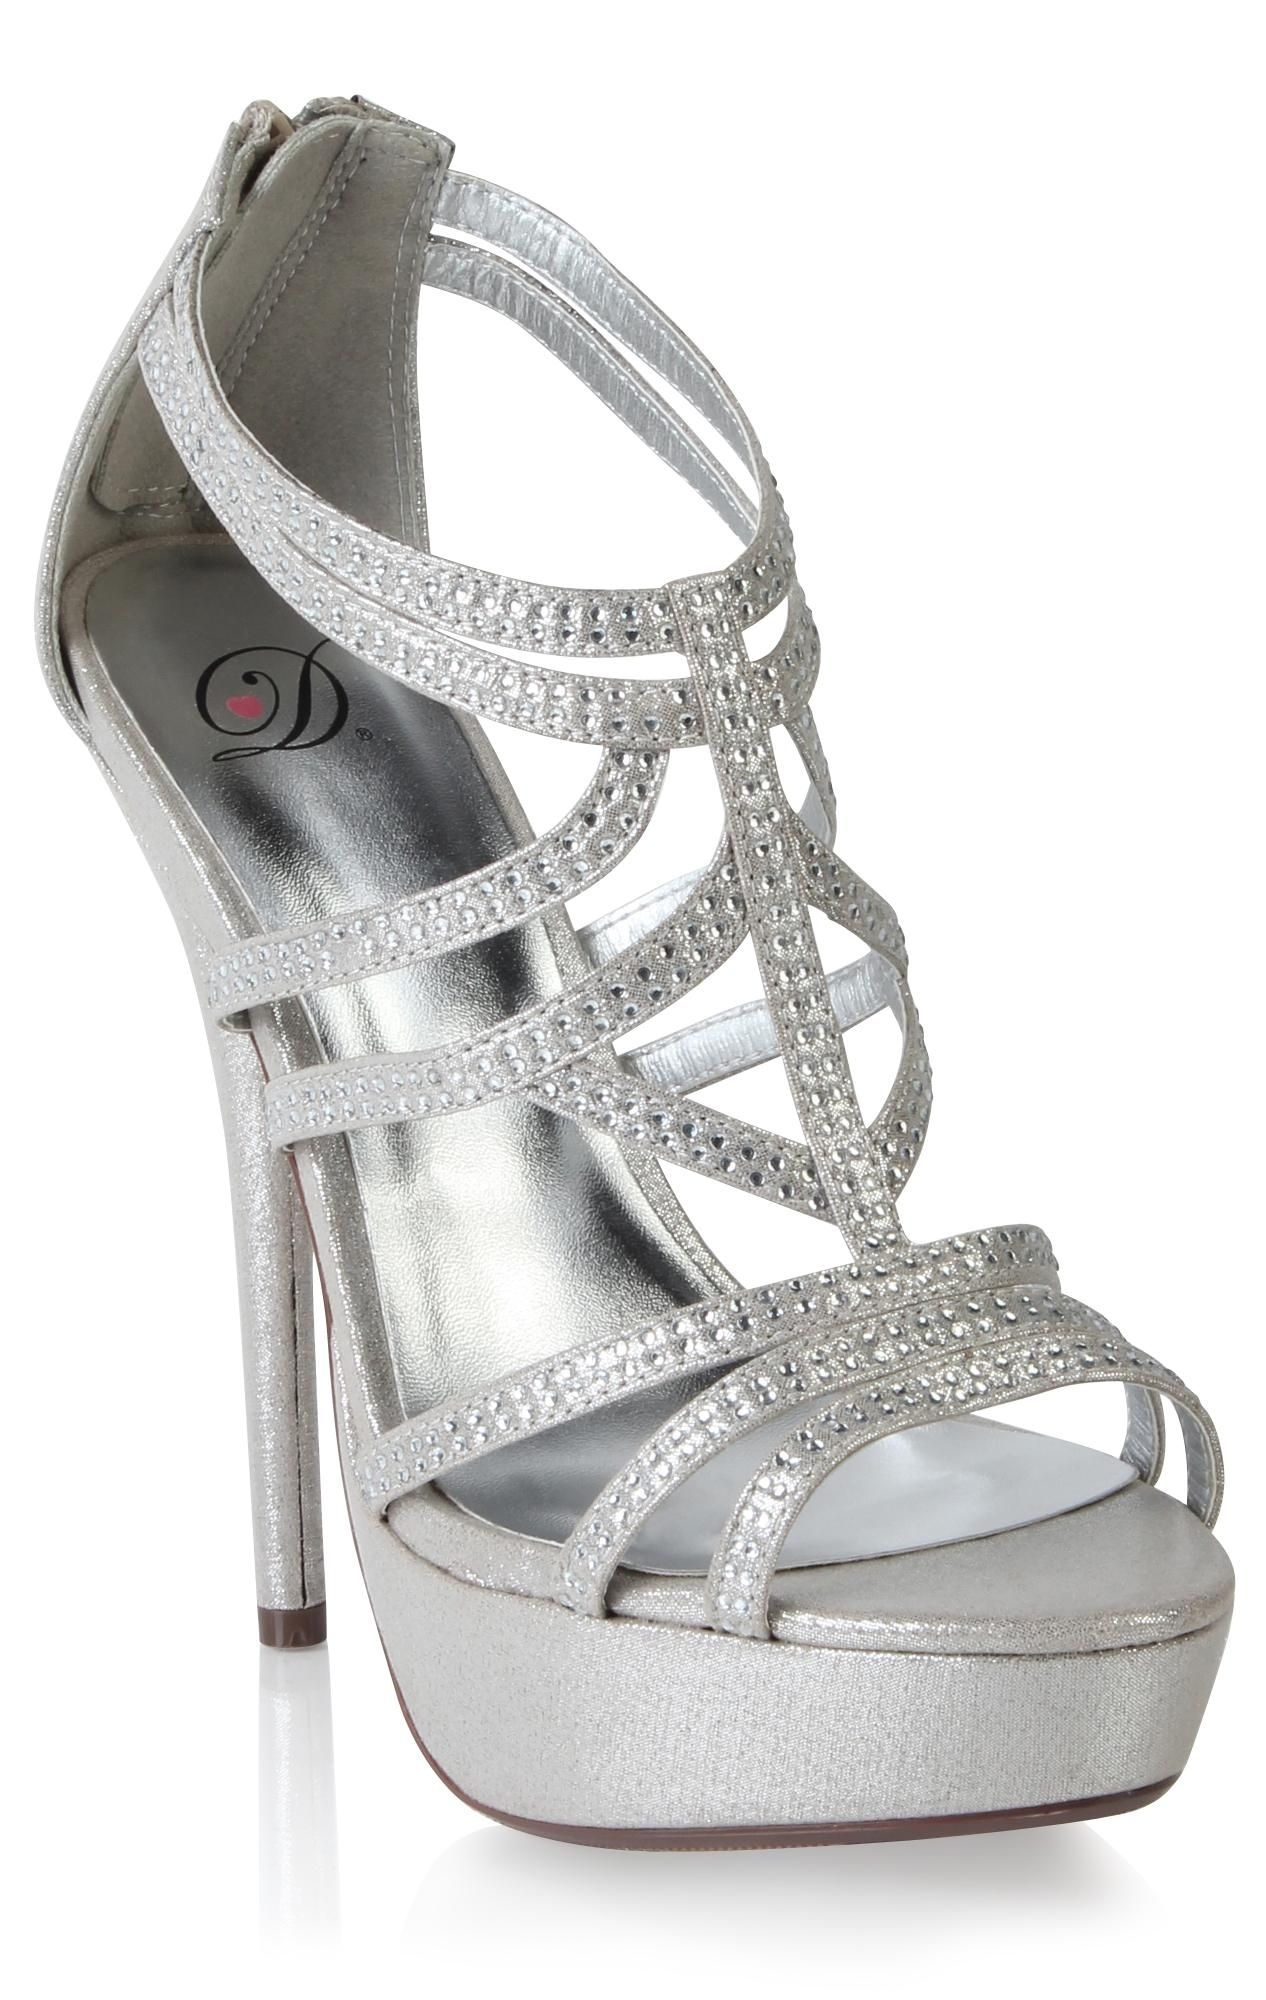 f68a0d5af50 open toe metallic silver strappy high heel  44.50